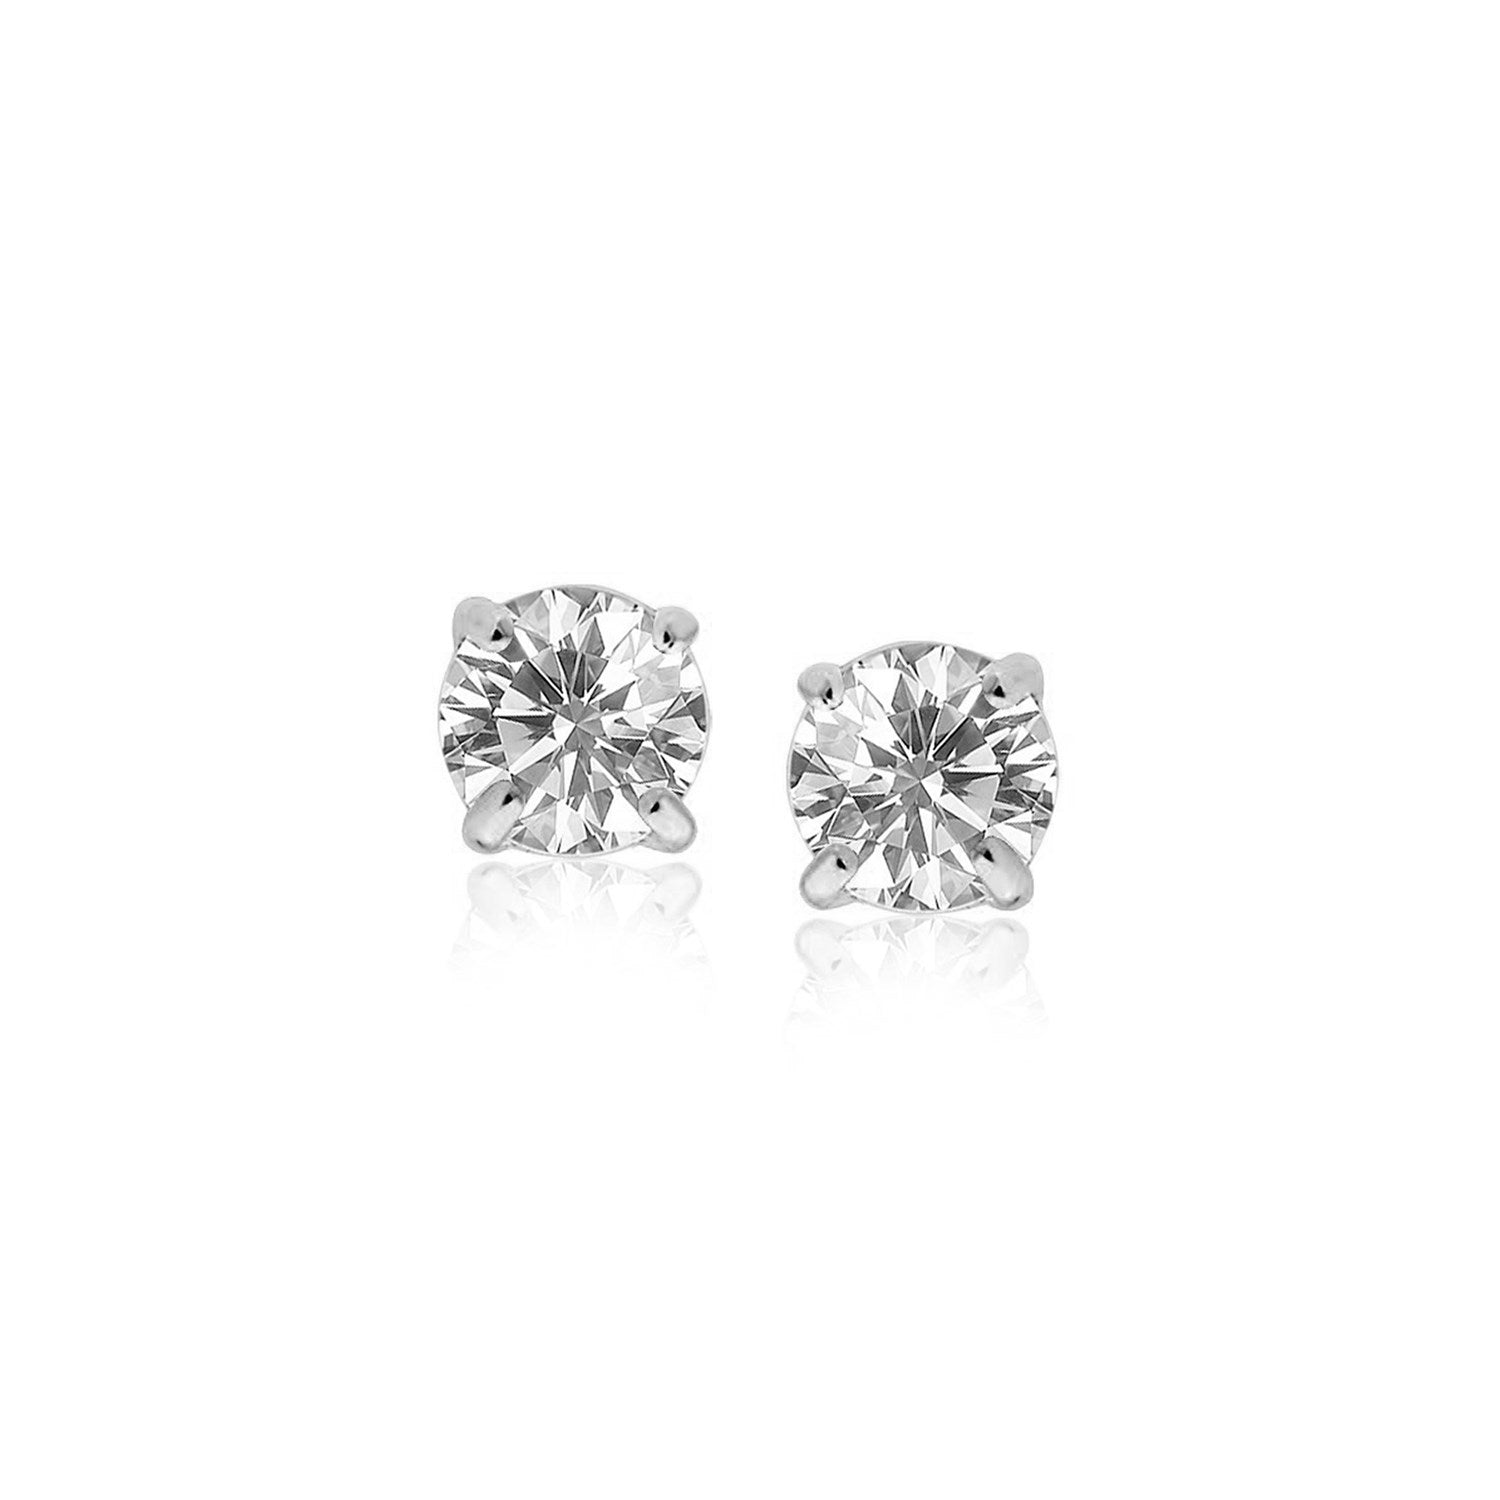 Sterling Silver Stud Earrings with White Hue Faceted Cubic Zirconia